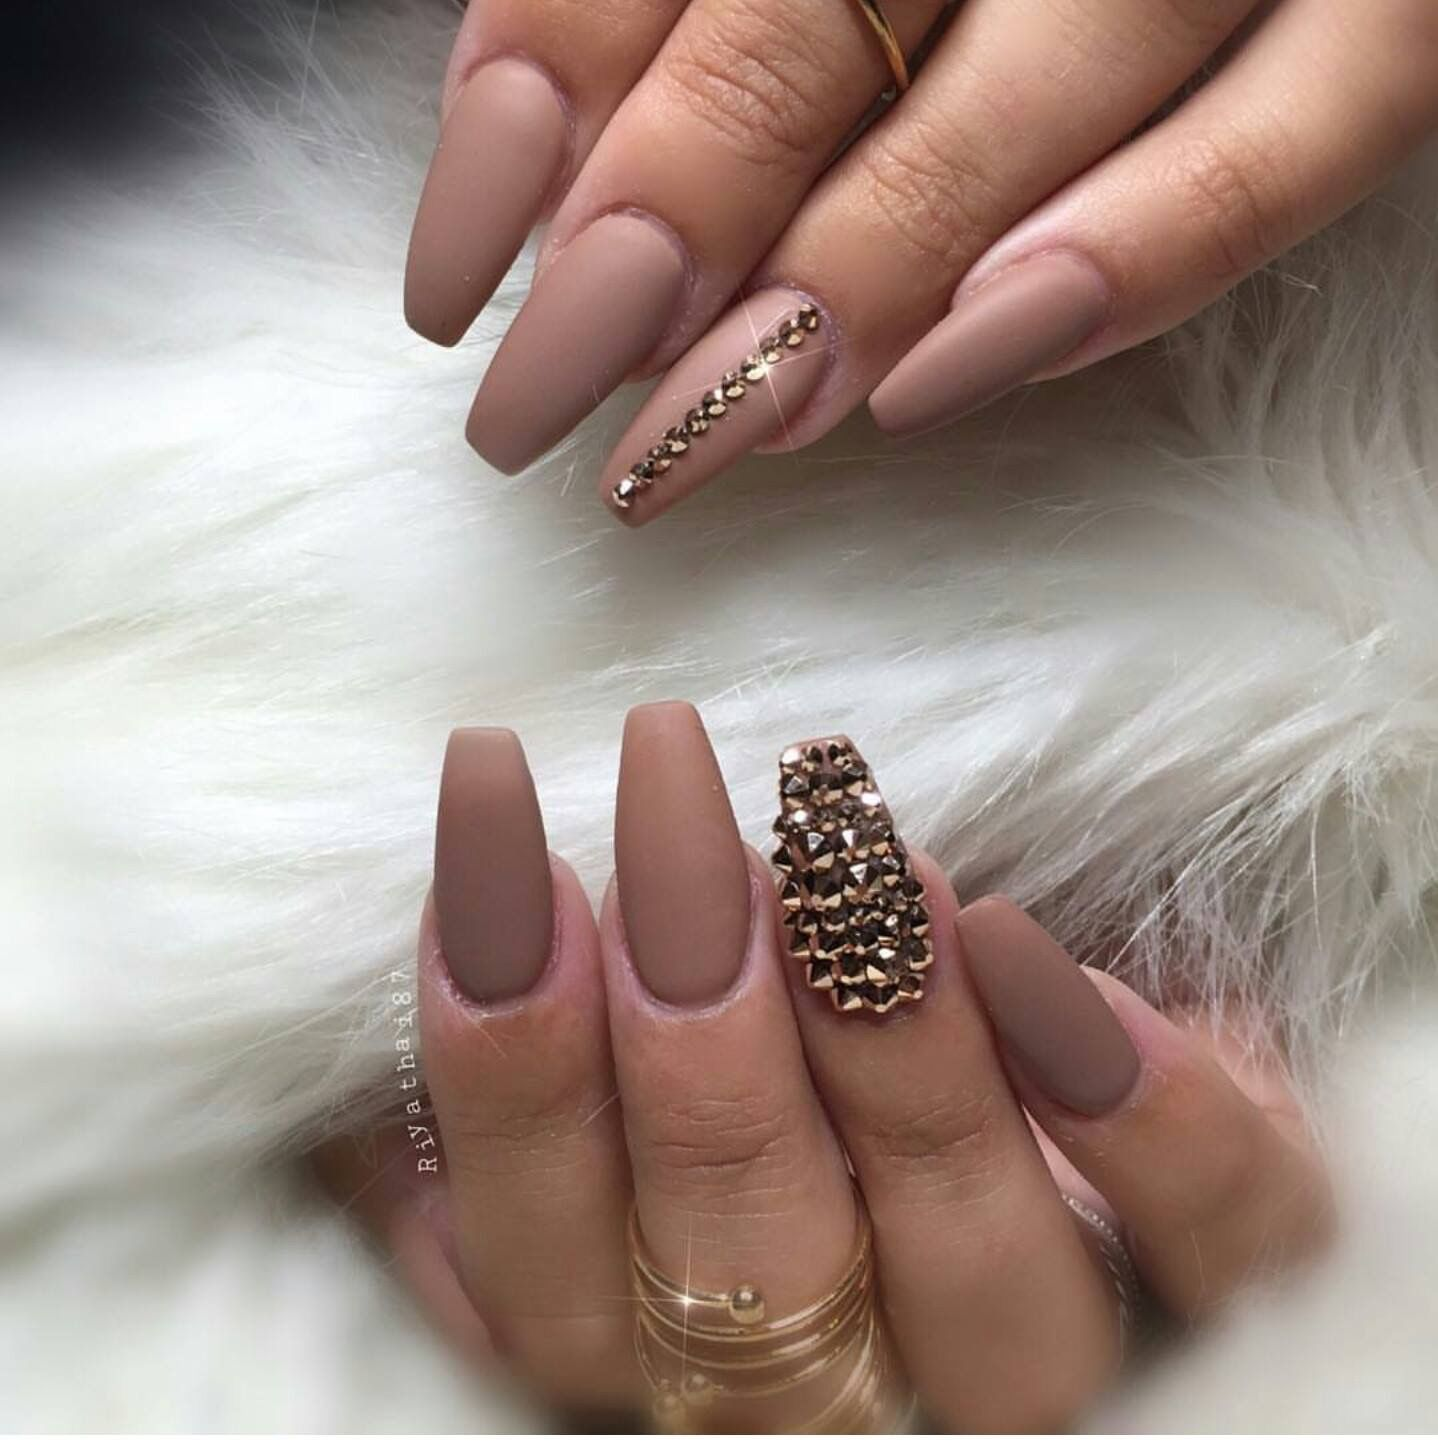 Pin by Anna Linares on Nail Ideas | Pinterest